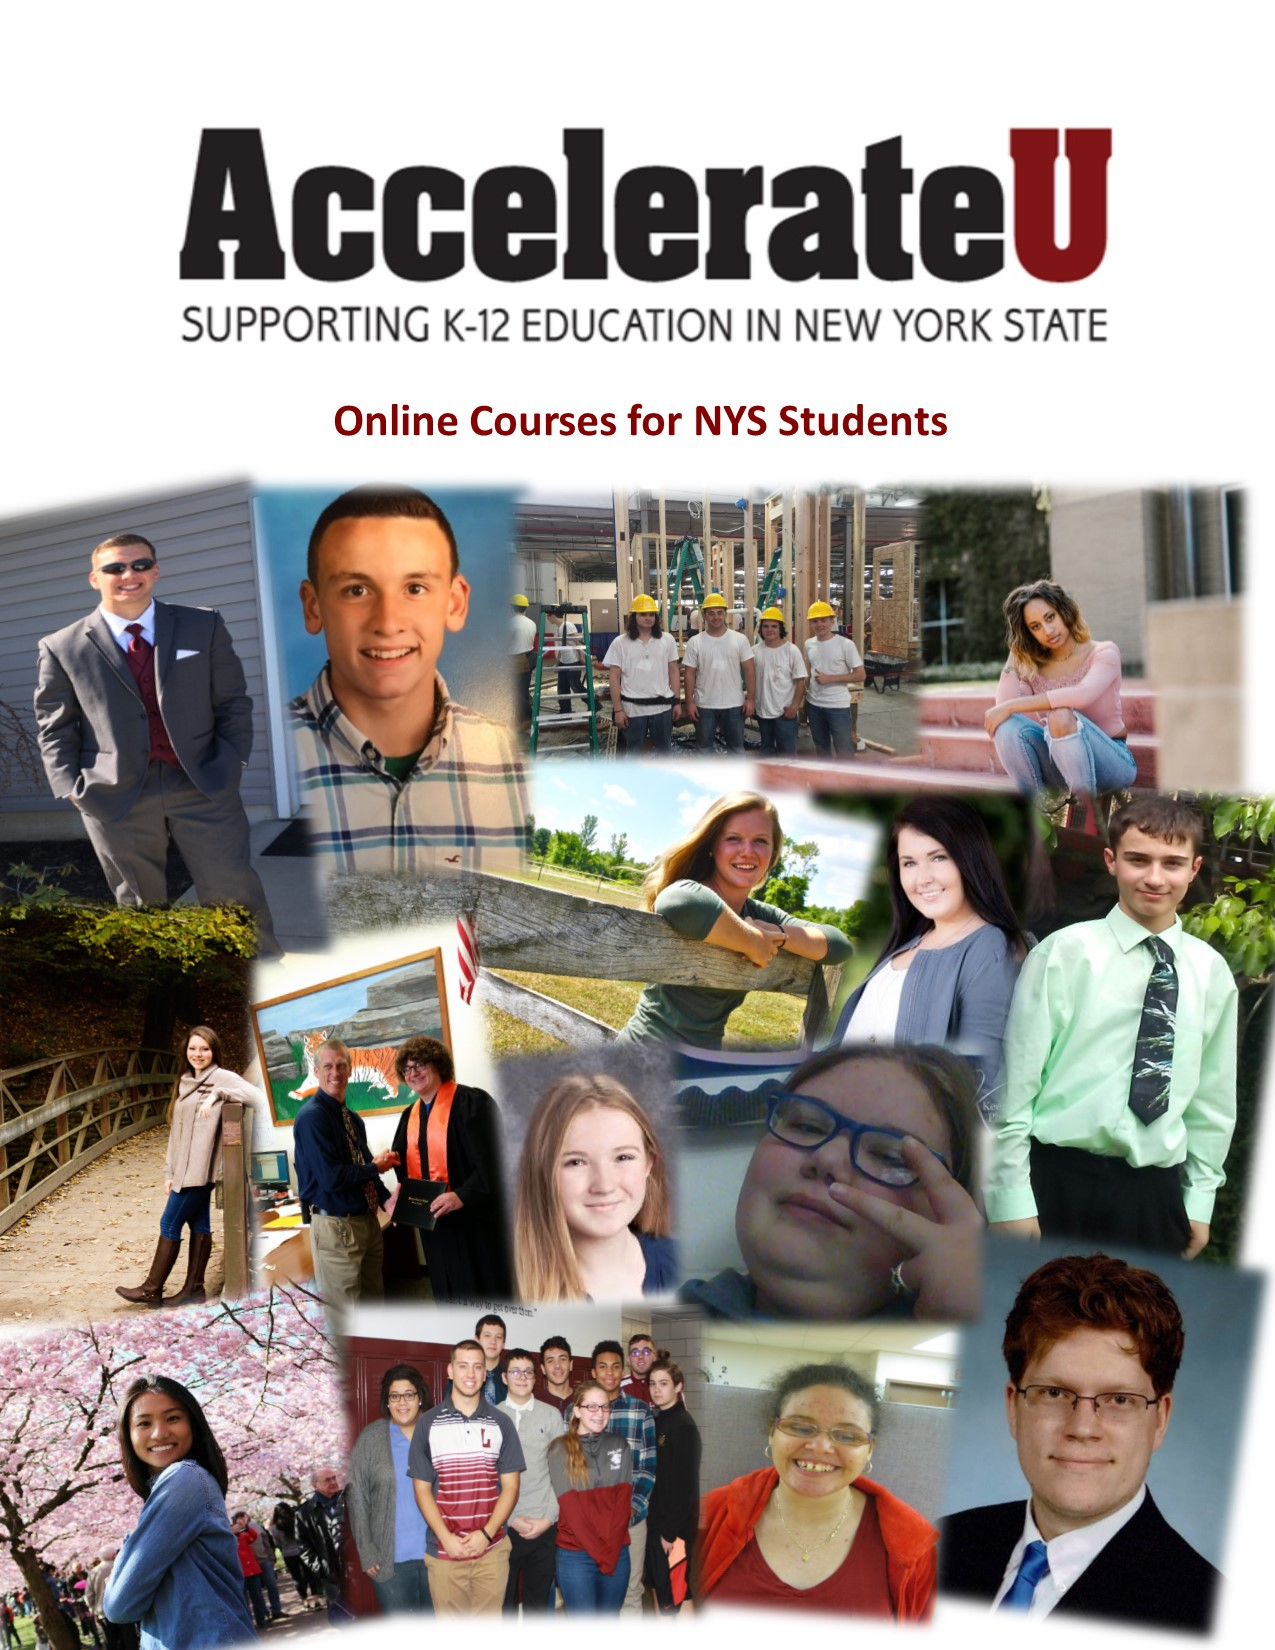 AccelerateU Guide featuring former students from various districts